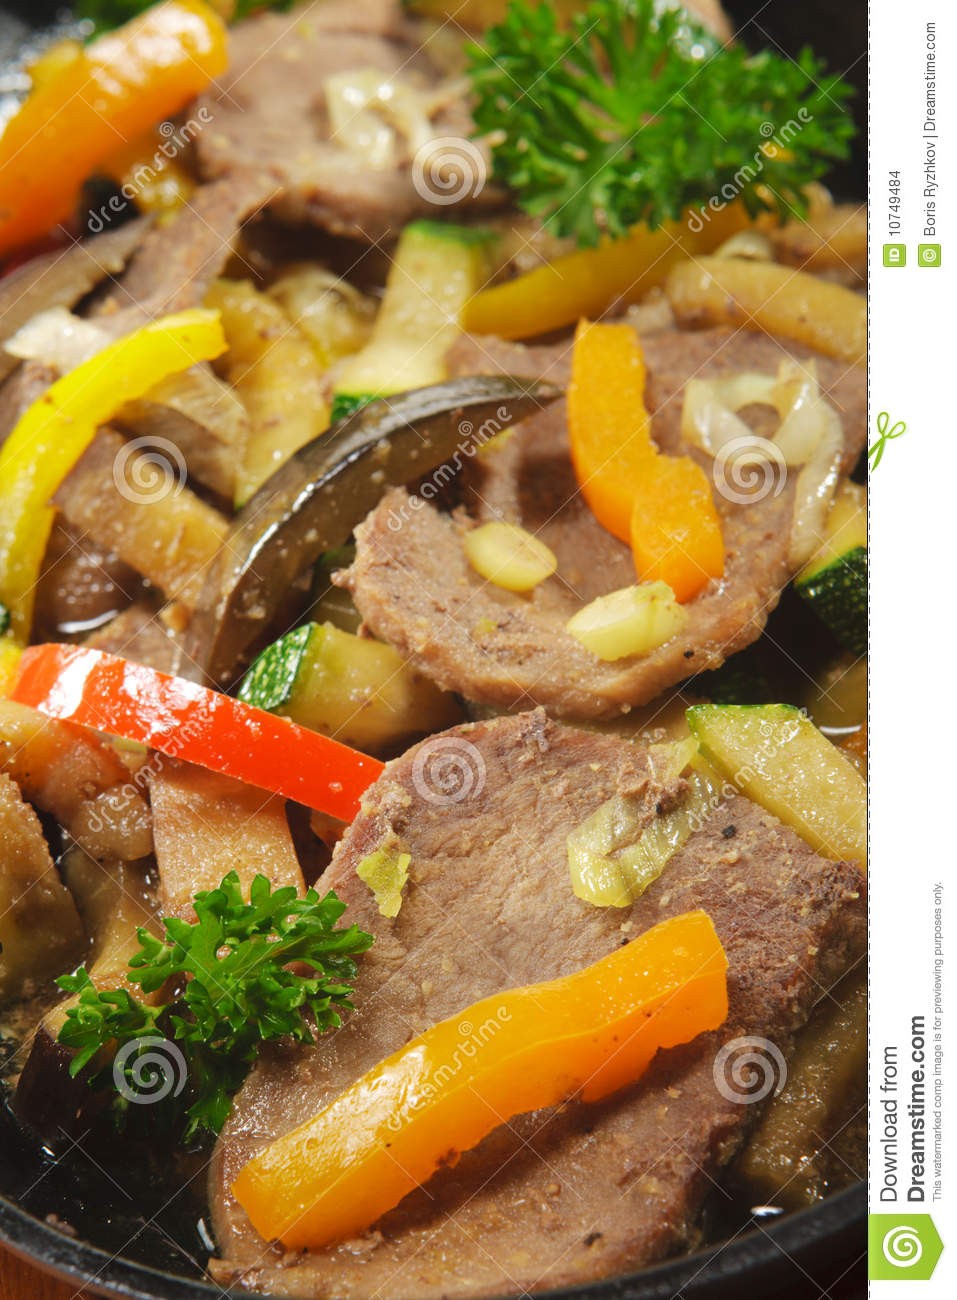 Japanese cuisine - beef with mix of vegetables